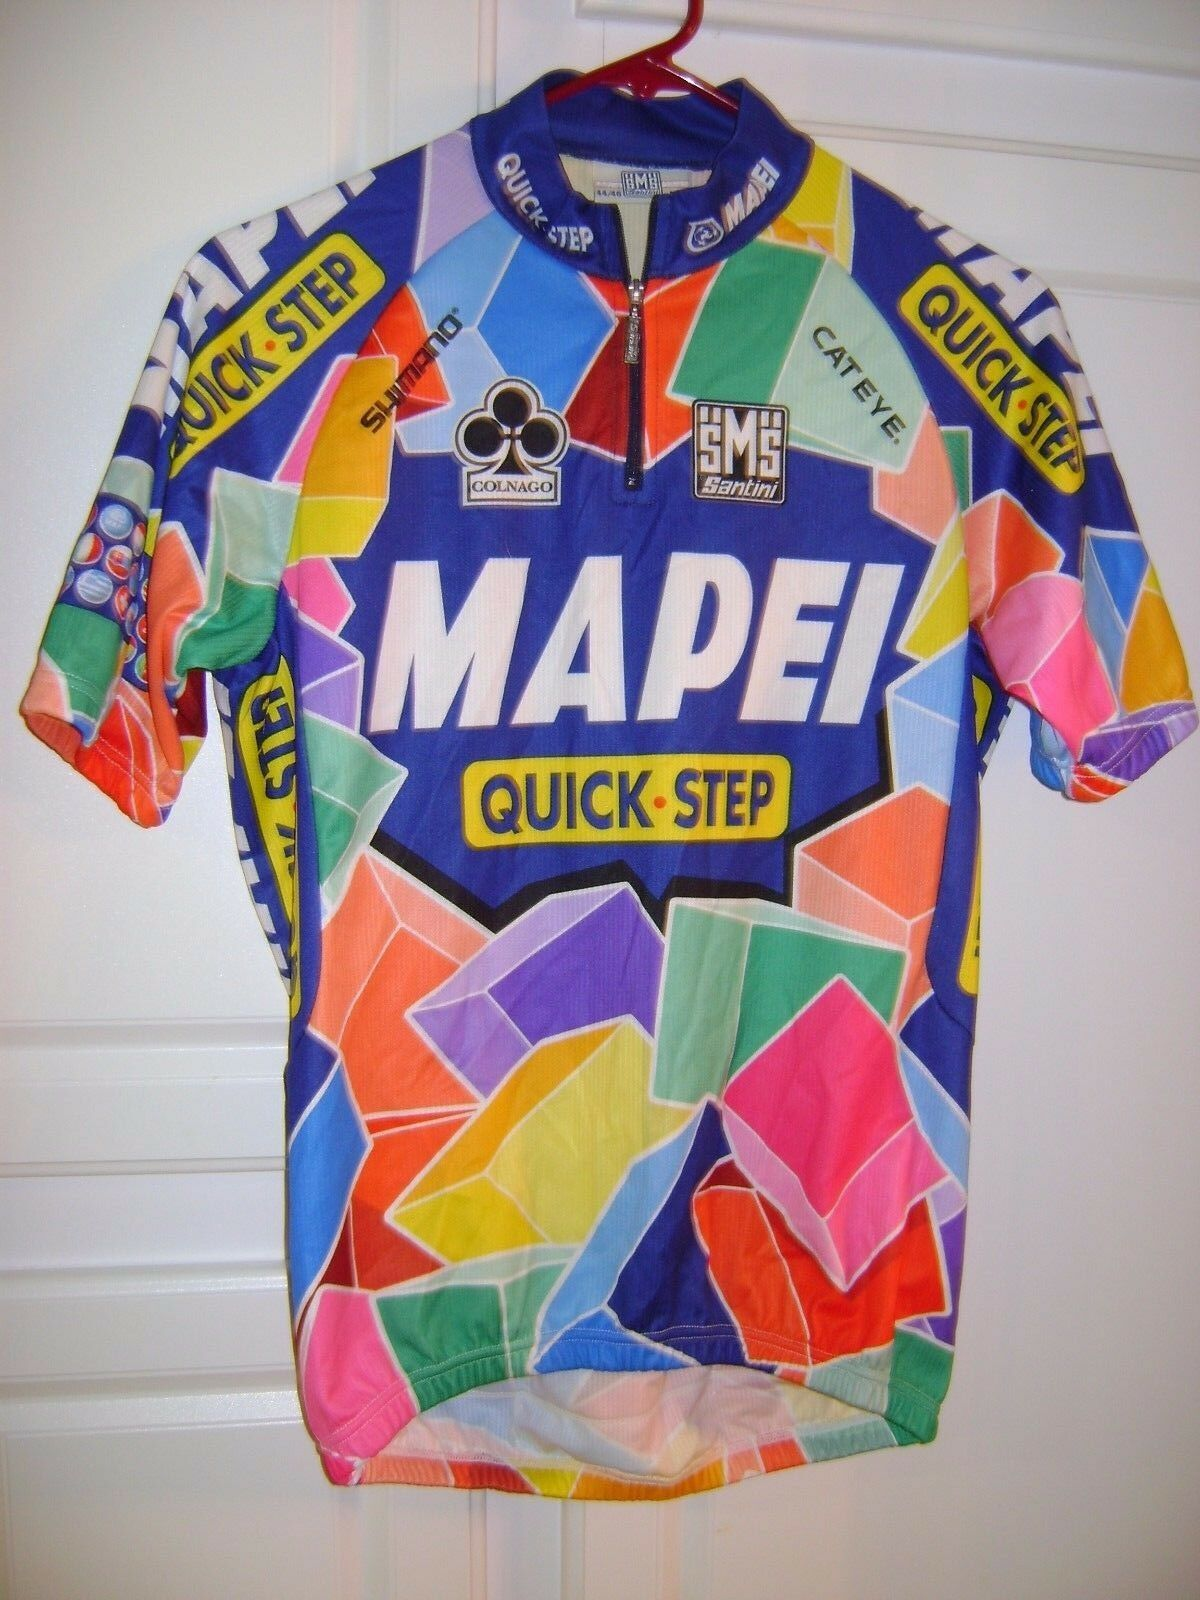 SMS  Santini Vintage MAPEI Cycling JERSEY Men's Medium 44 46  outlet sale